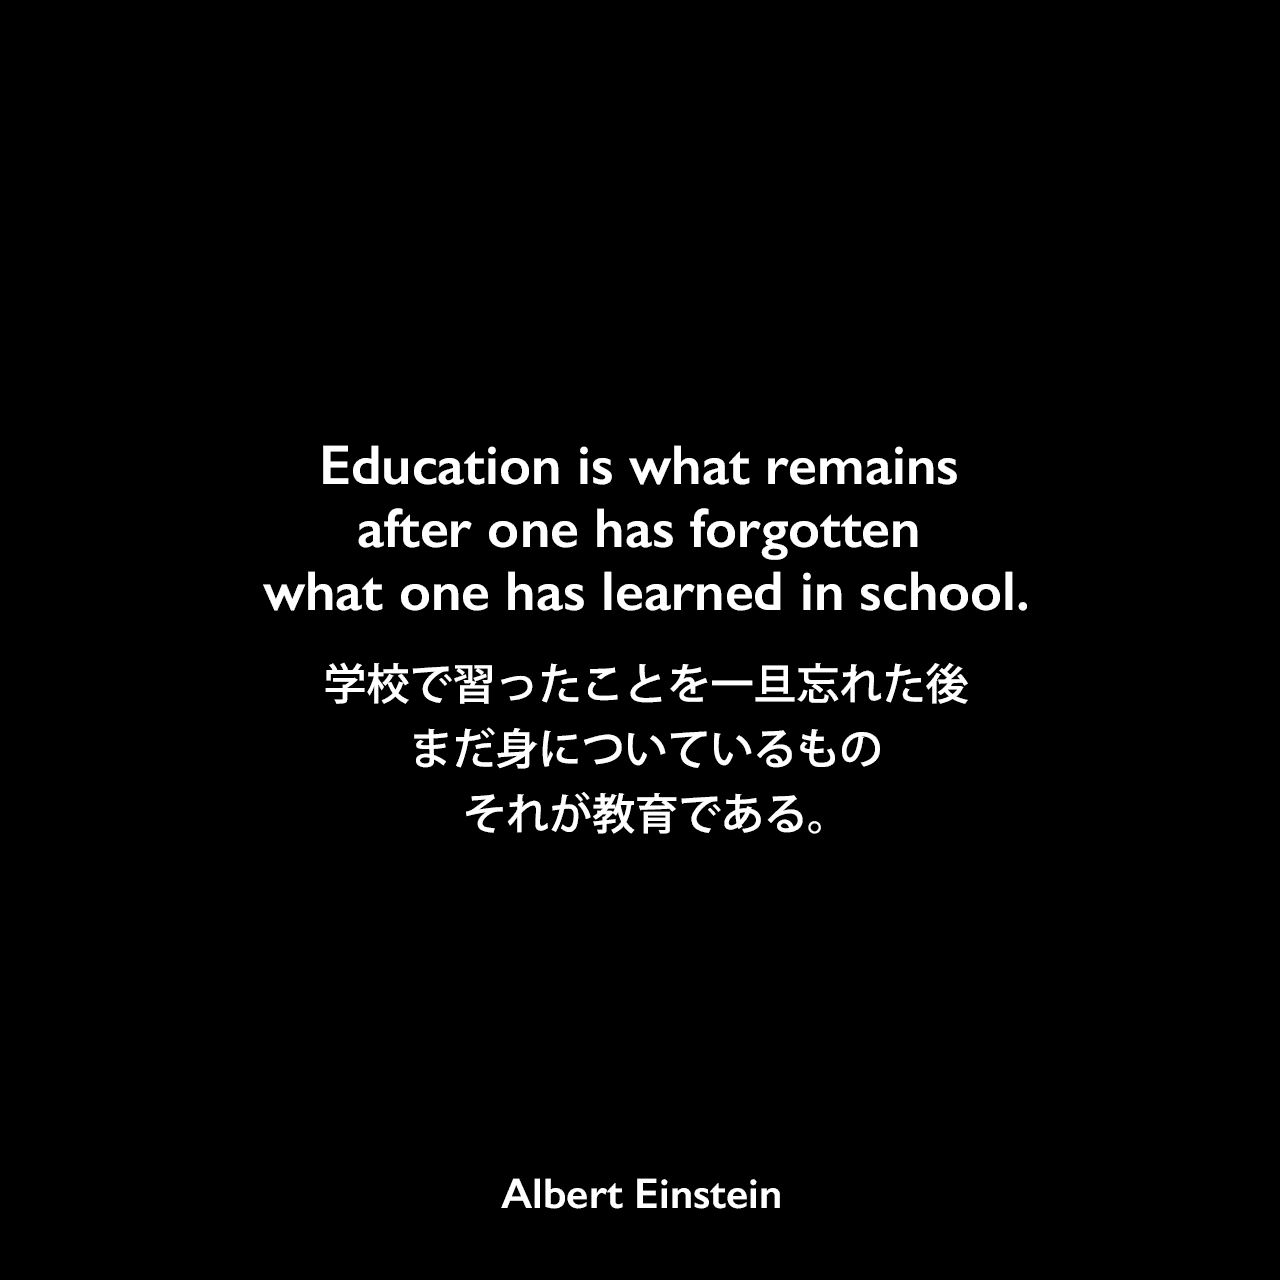 Education is what remains after one has forgotten what one has learned in school.学校で習ったことを一旦忘れた後、まだ身についているもの、それが教育である。Albert Einstein